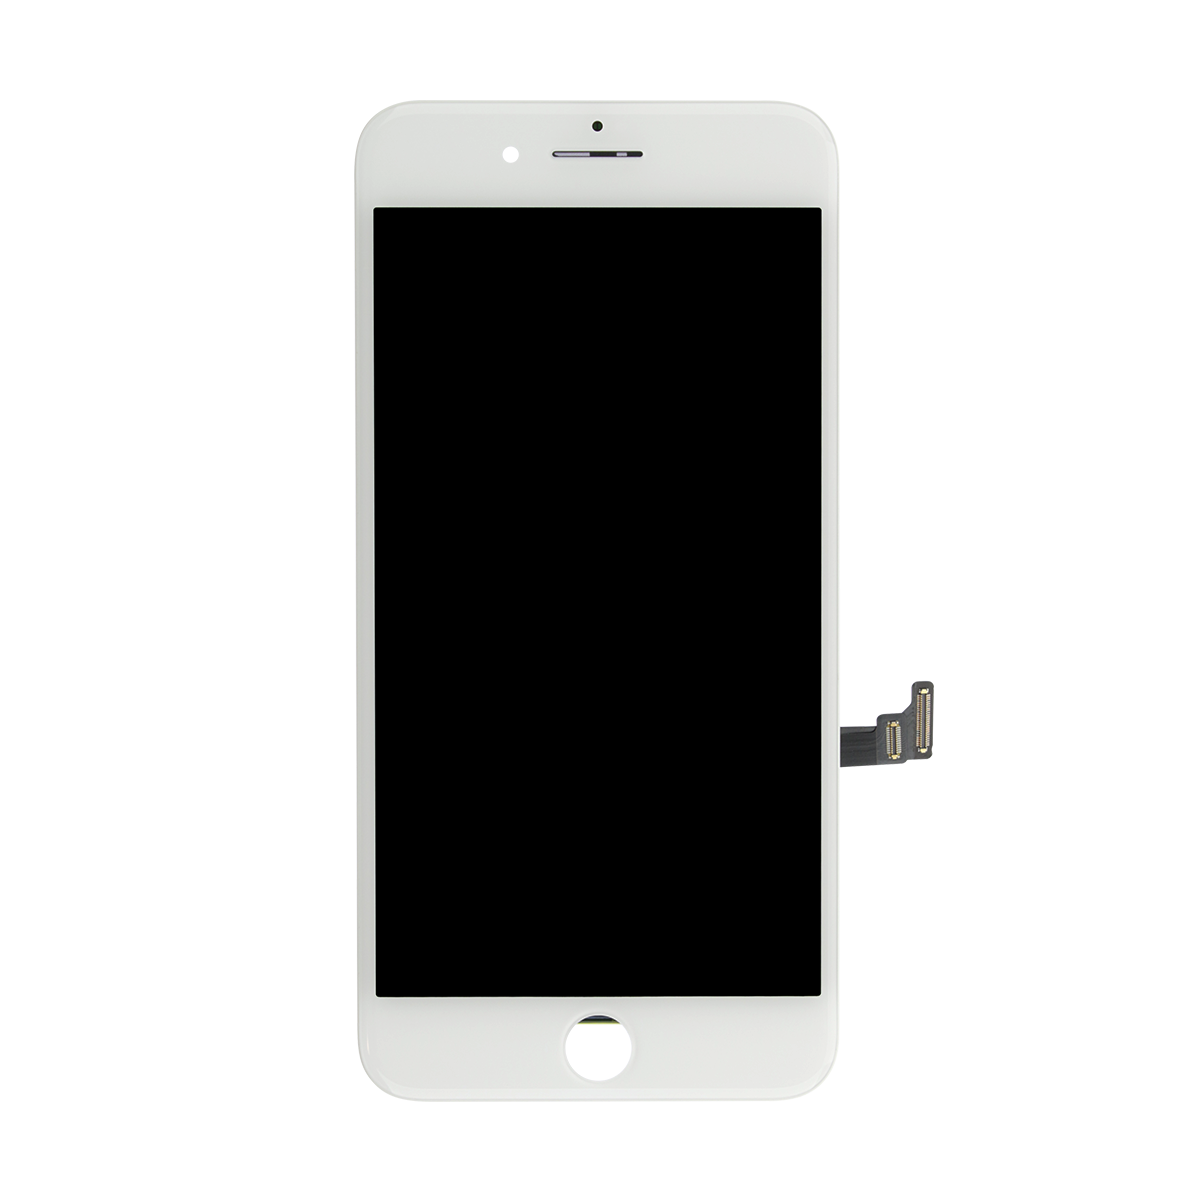 iphone battery replacement instructions